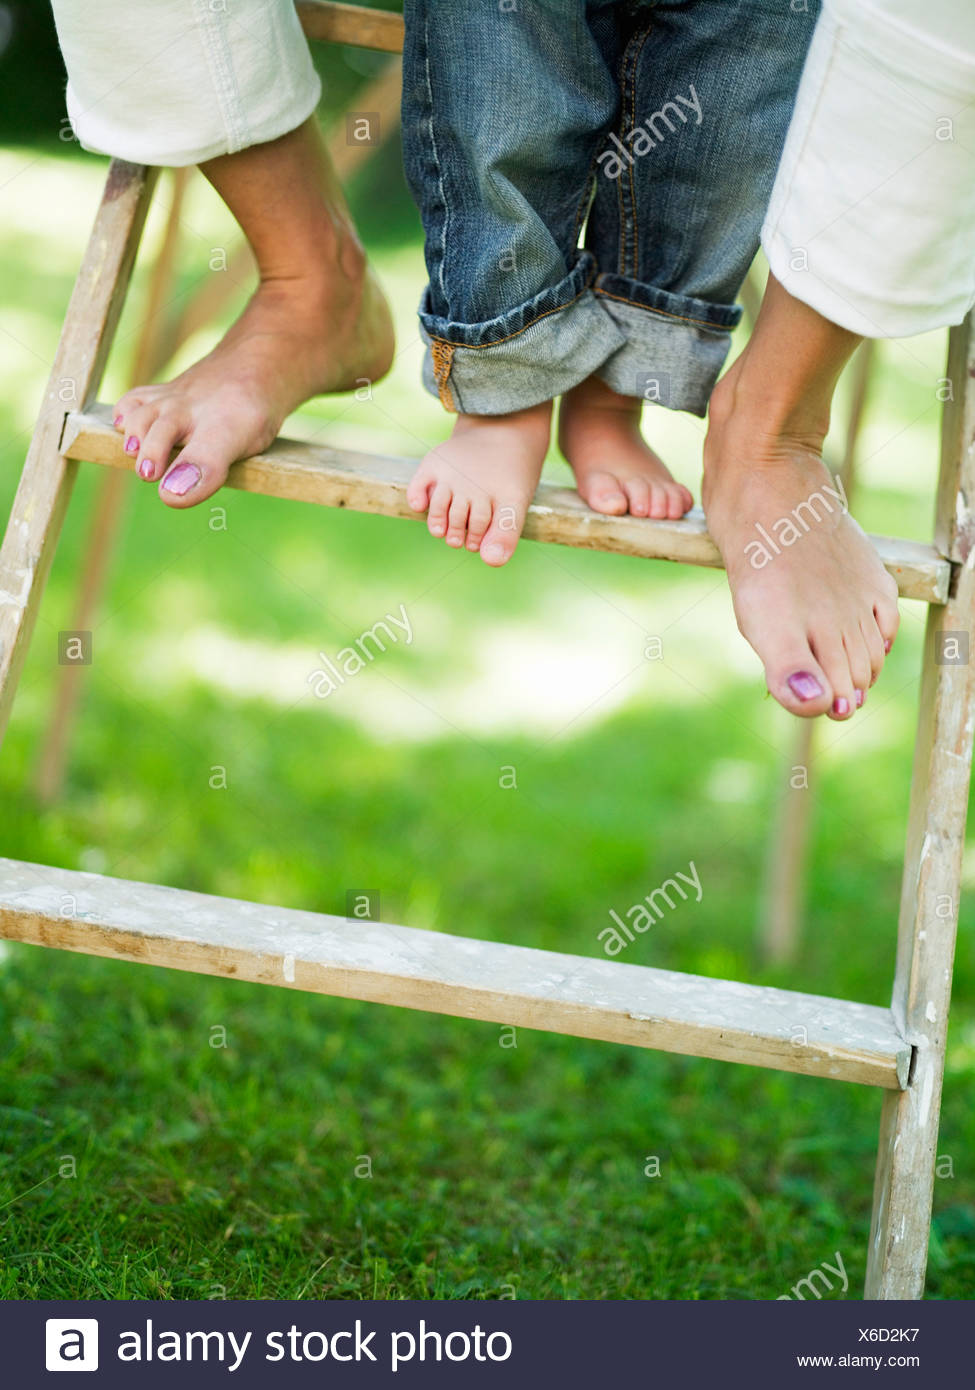 Two pair of legs on a ladder, Stockholm, Sweden. - Stock Image